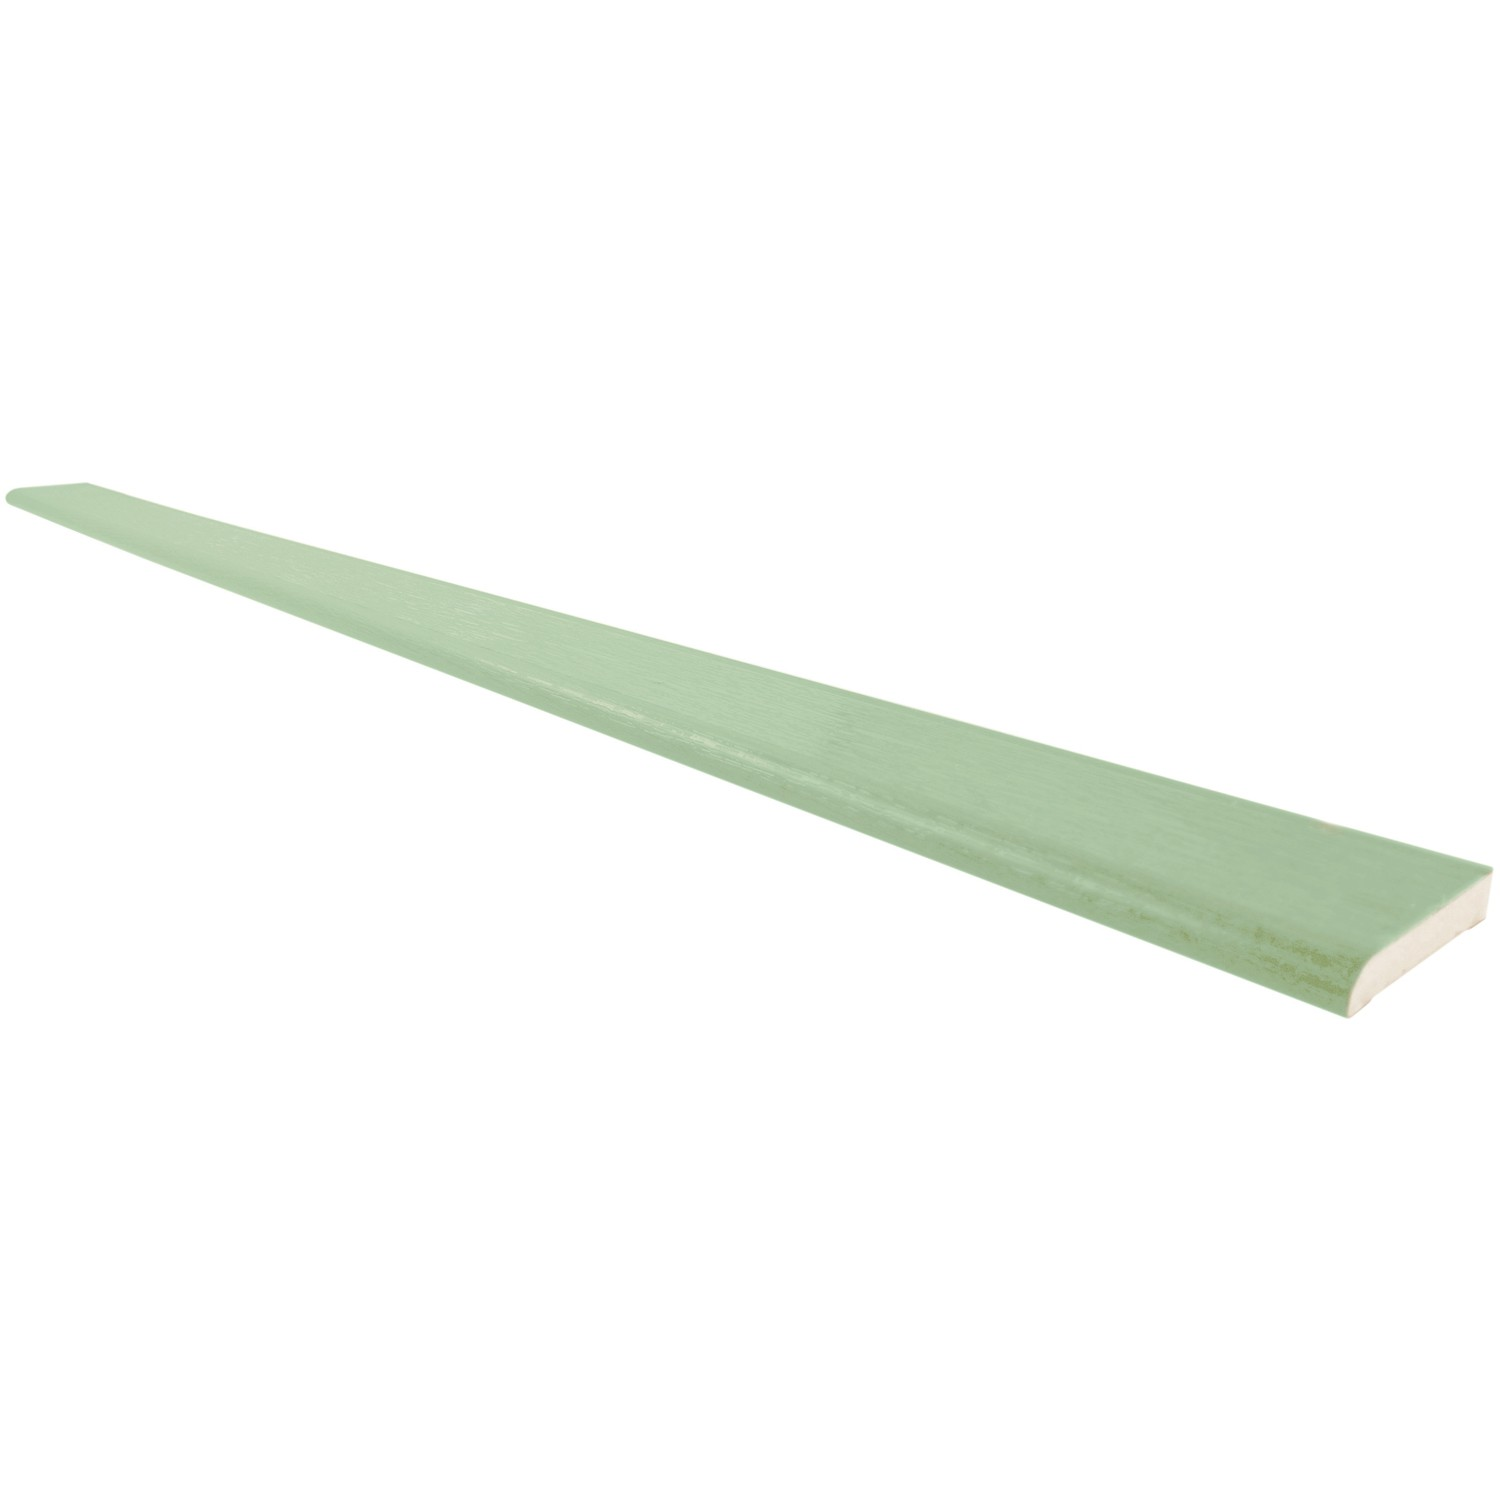 Freefoam 6mm Plastic Architrave - Woodgrain Chartwell Green, 90mm, 5 Metre